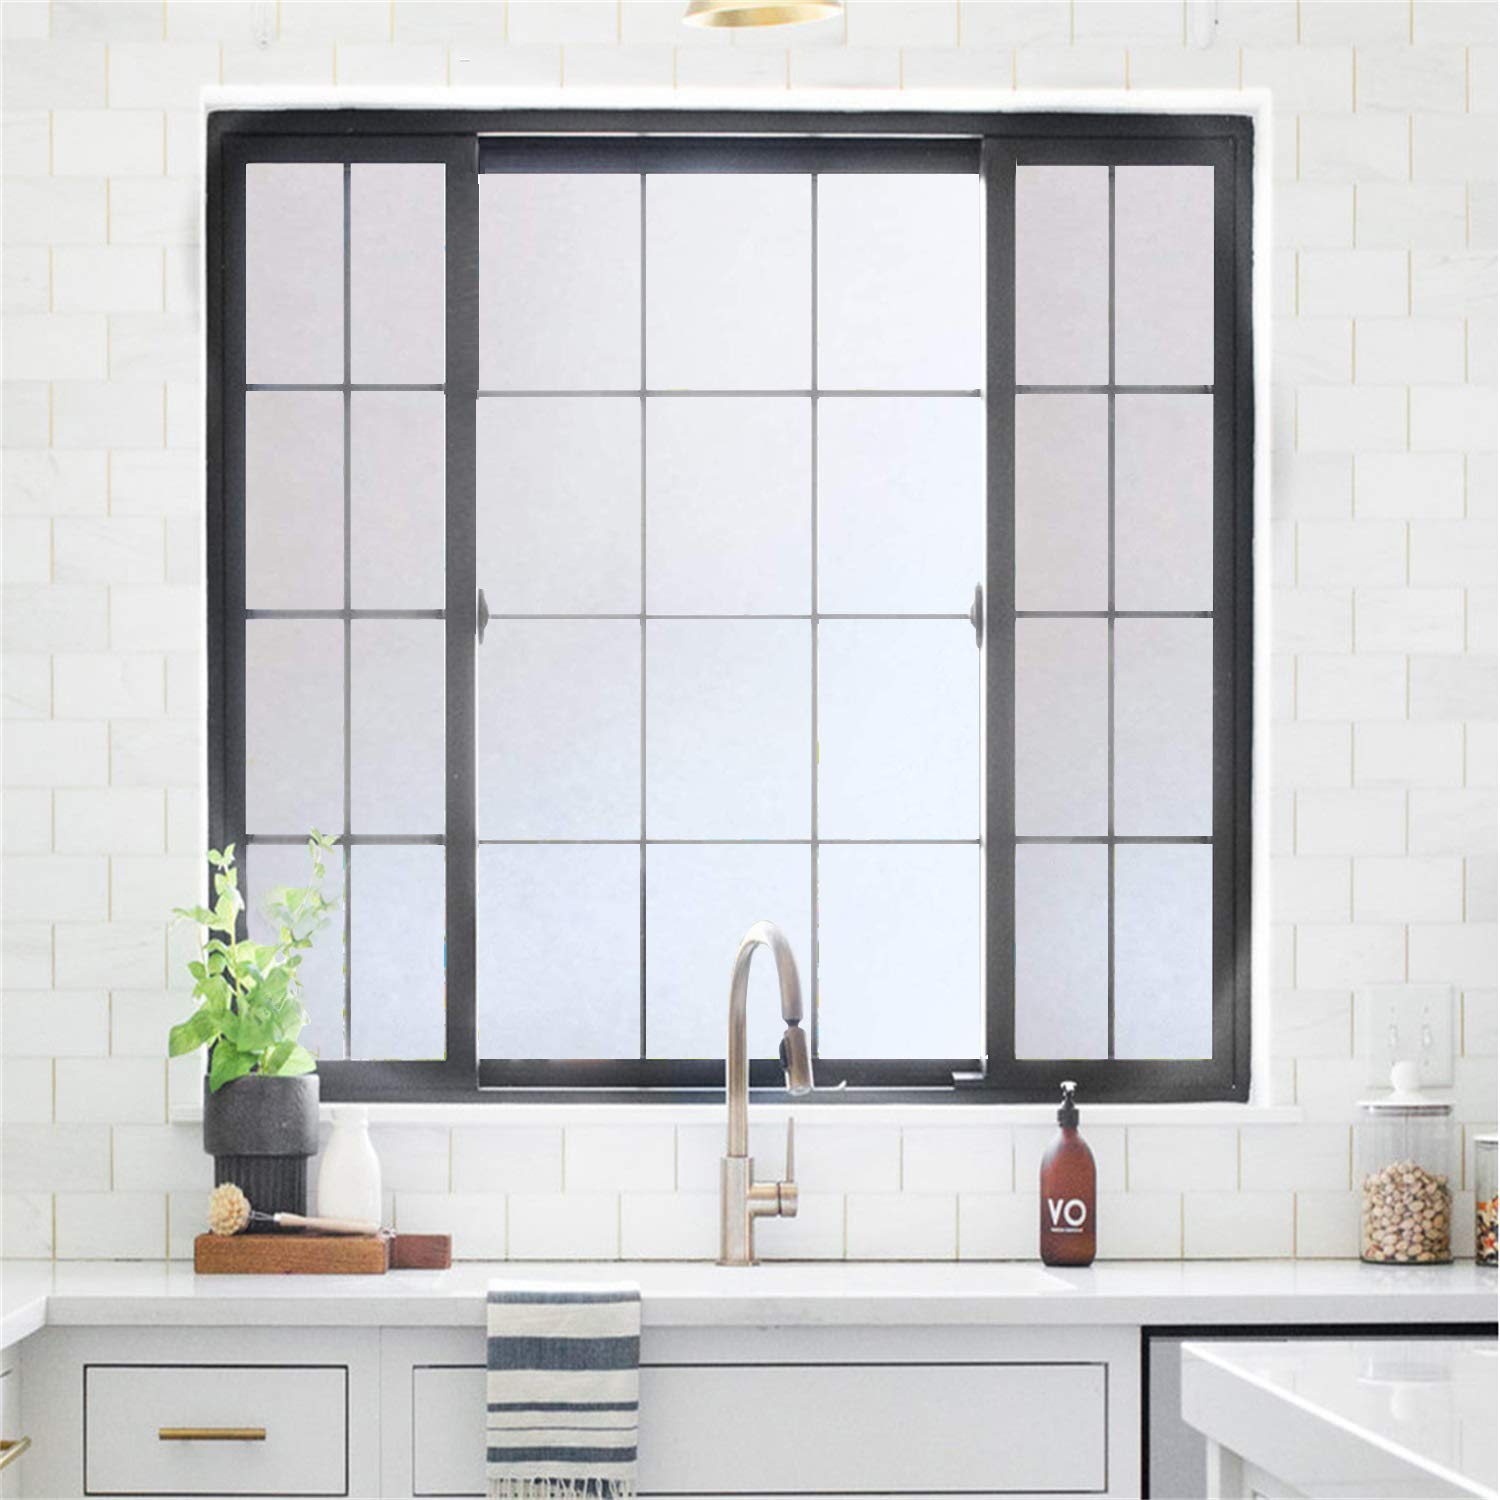 Rabbitgoo Privacy Window Film Frosted Film No Glue Anti-UV Window Sticker White Frosted Window Cling Non-Adhesive for Privacy Office Meeting Room Bathroom Bedroom Living Room 17.5 x 78.7